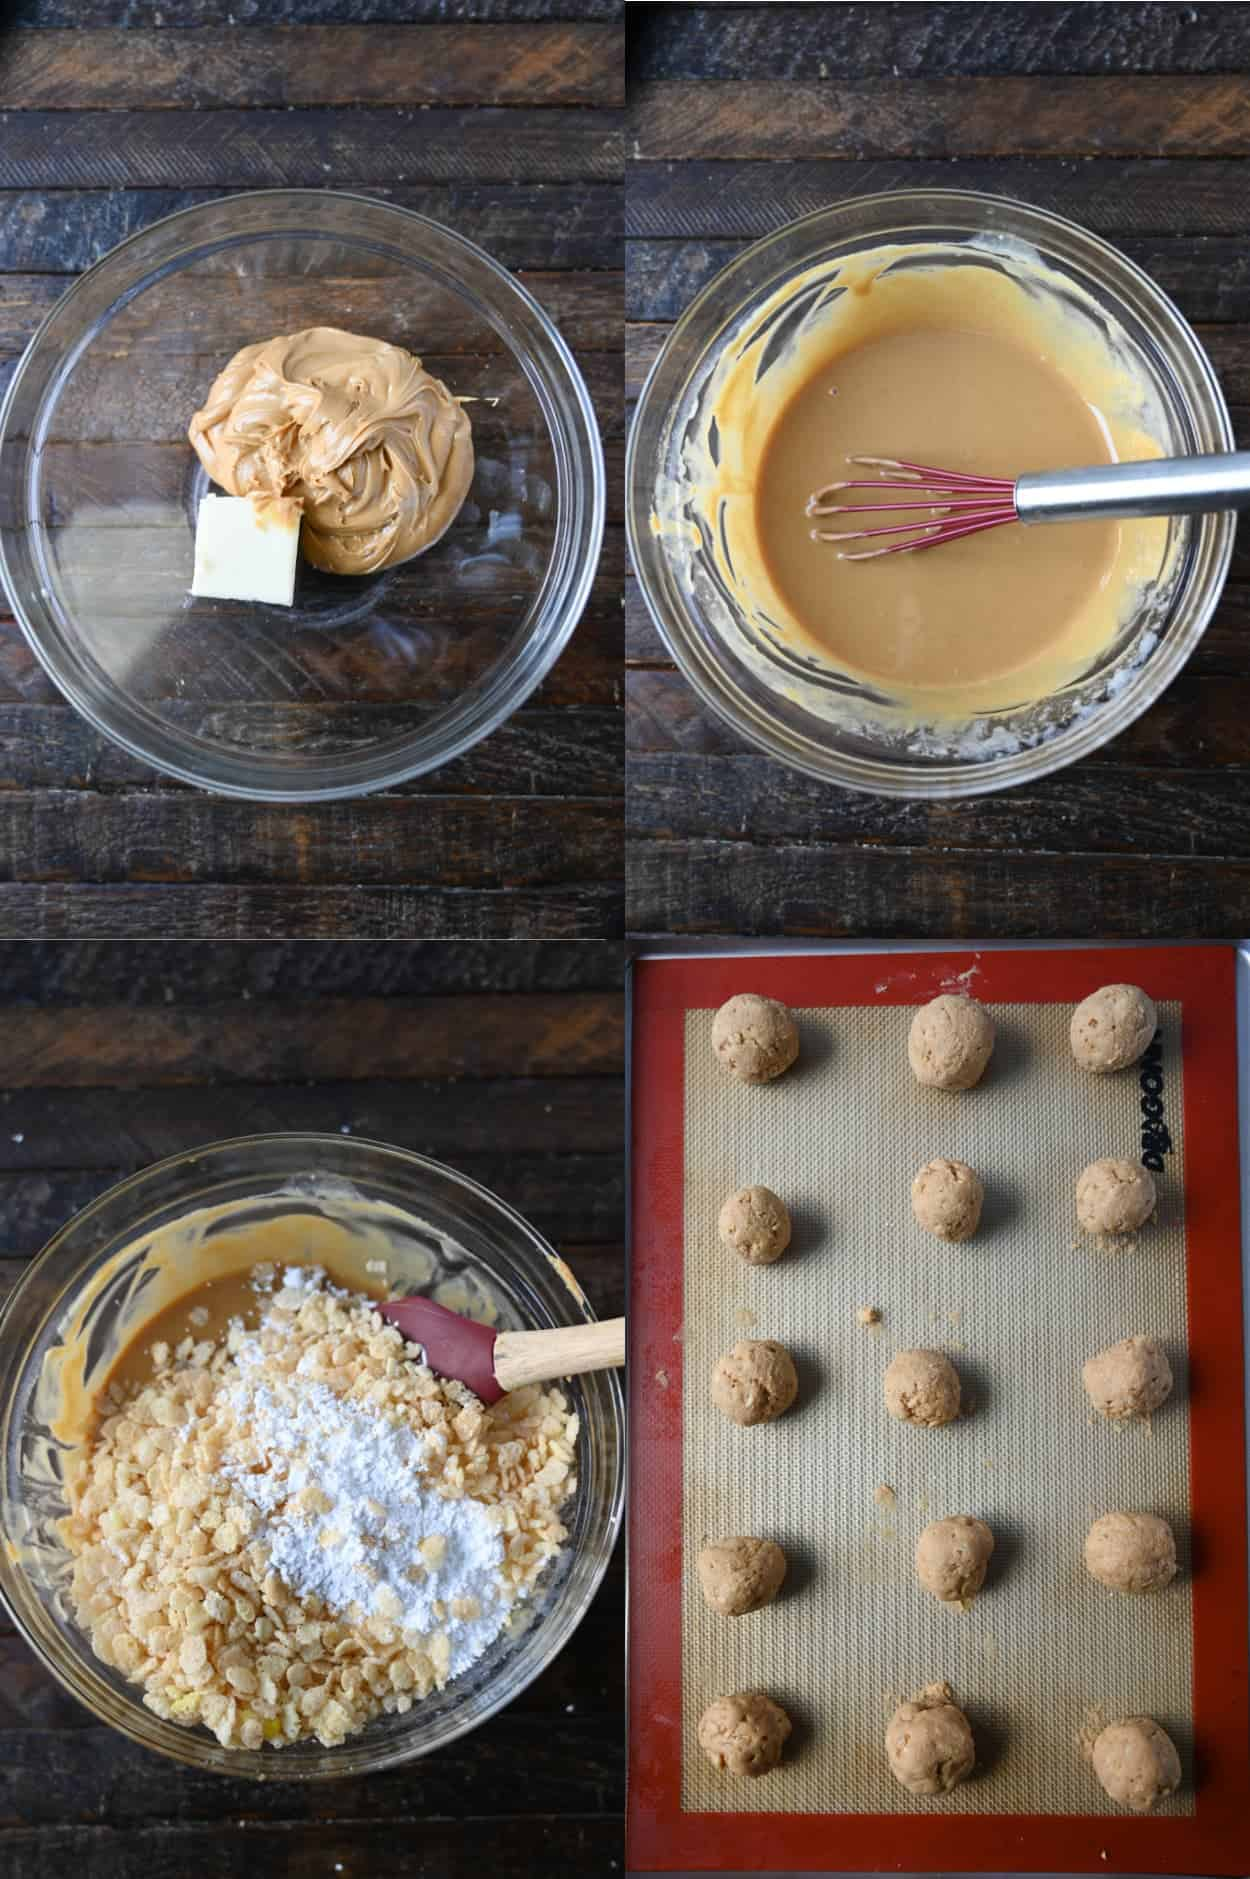 Four process photos. First one, butter and peanut butter in a bowl getting ready to be heated in the microwave. Second one, peanut butter and butter melted. Third one, rice krispies and powdered sugar poured into the melted mixture. Fourth one, rolled peanut butter balls placed on a baking sheet.